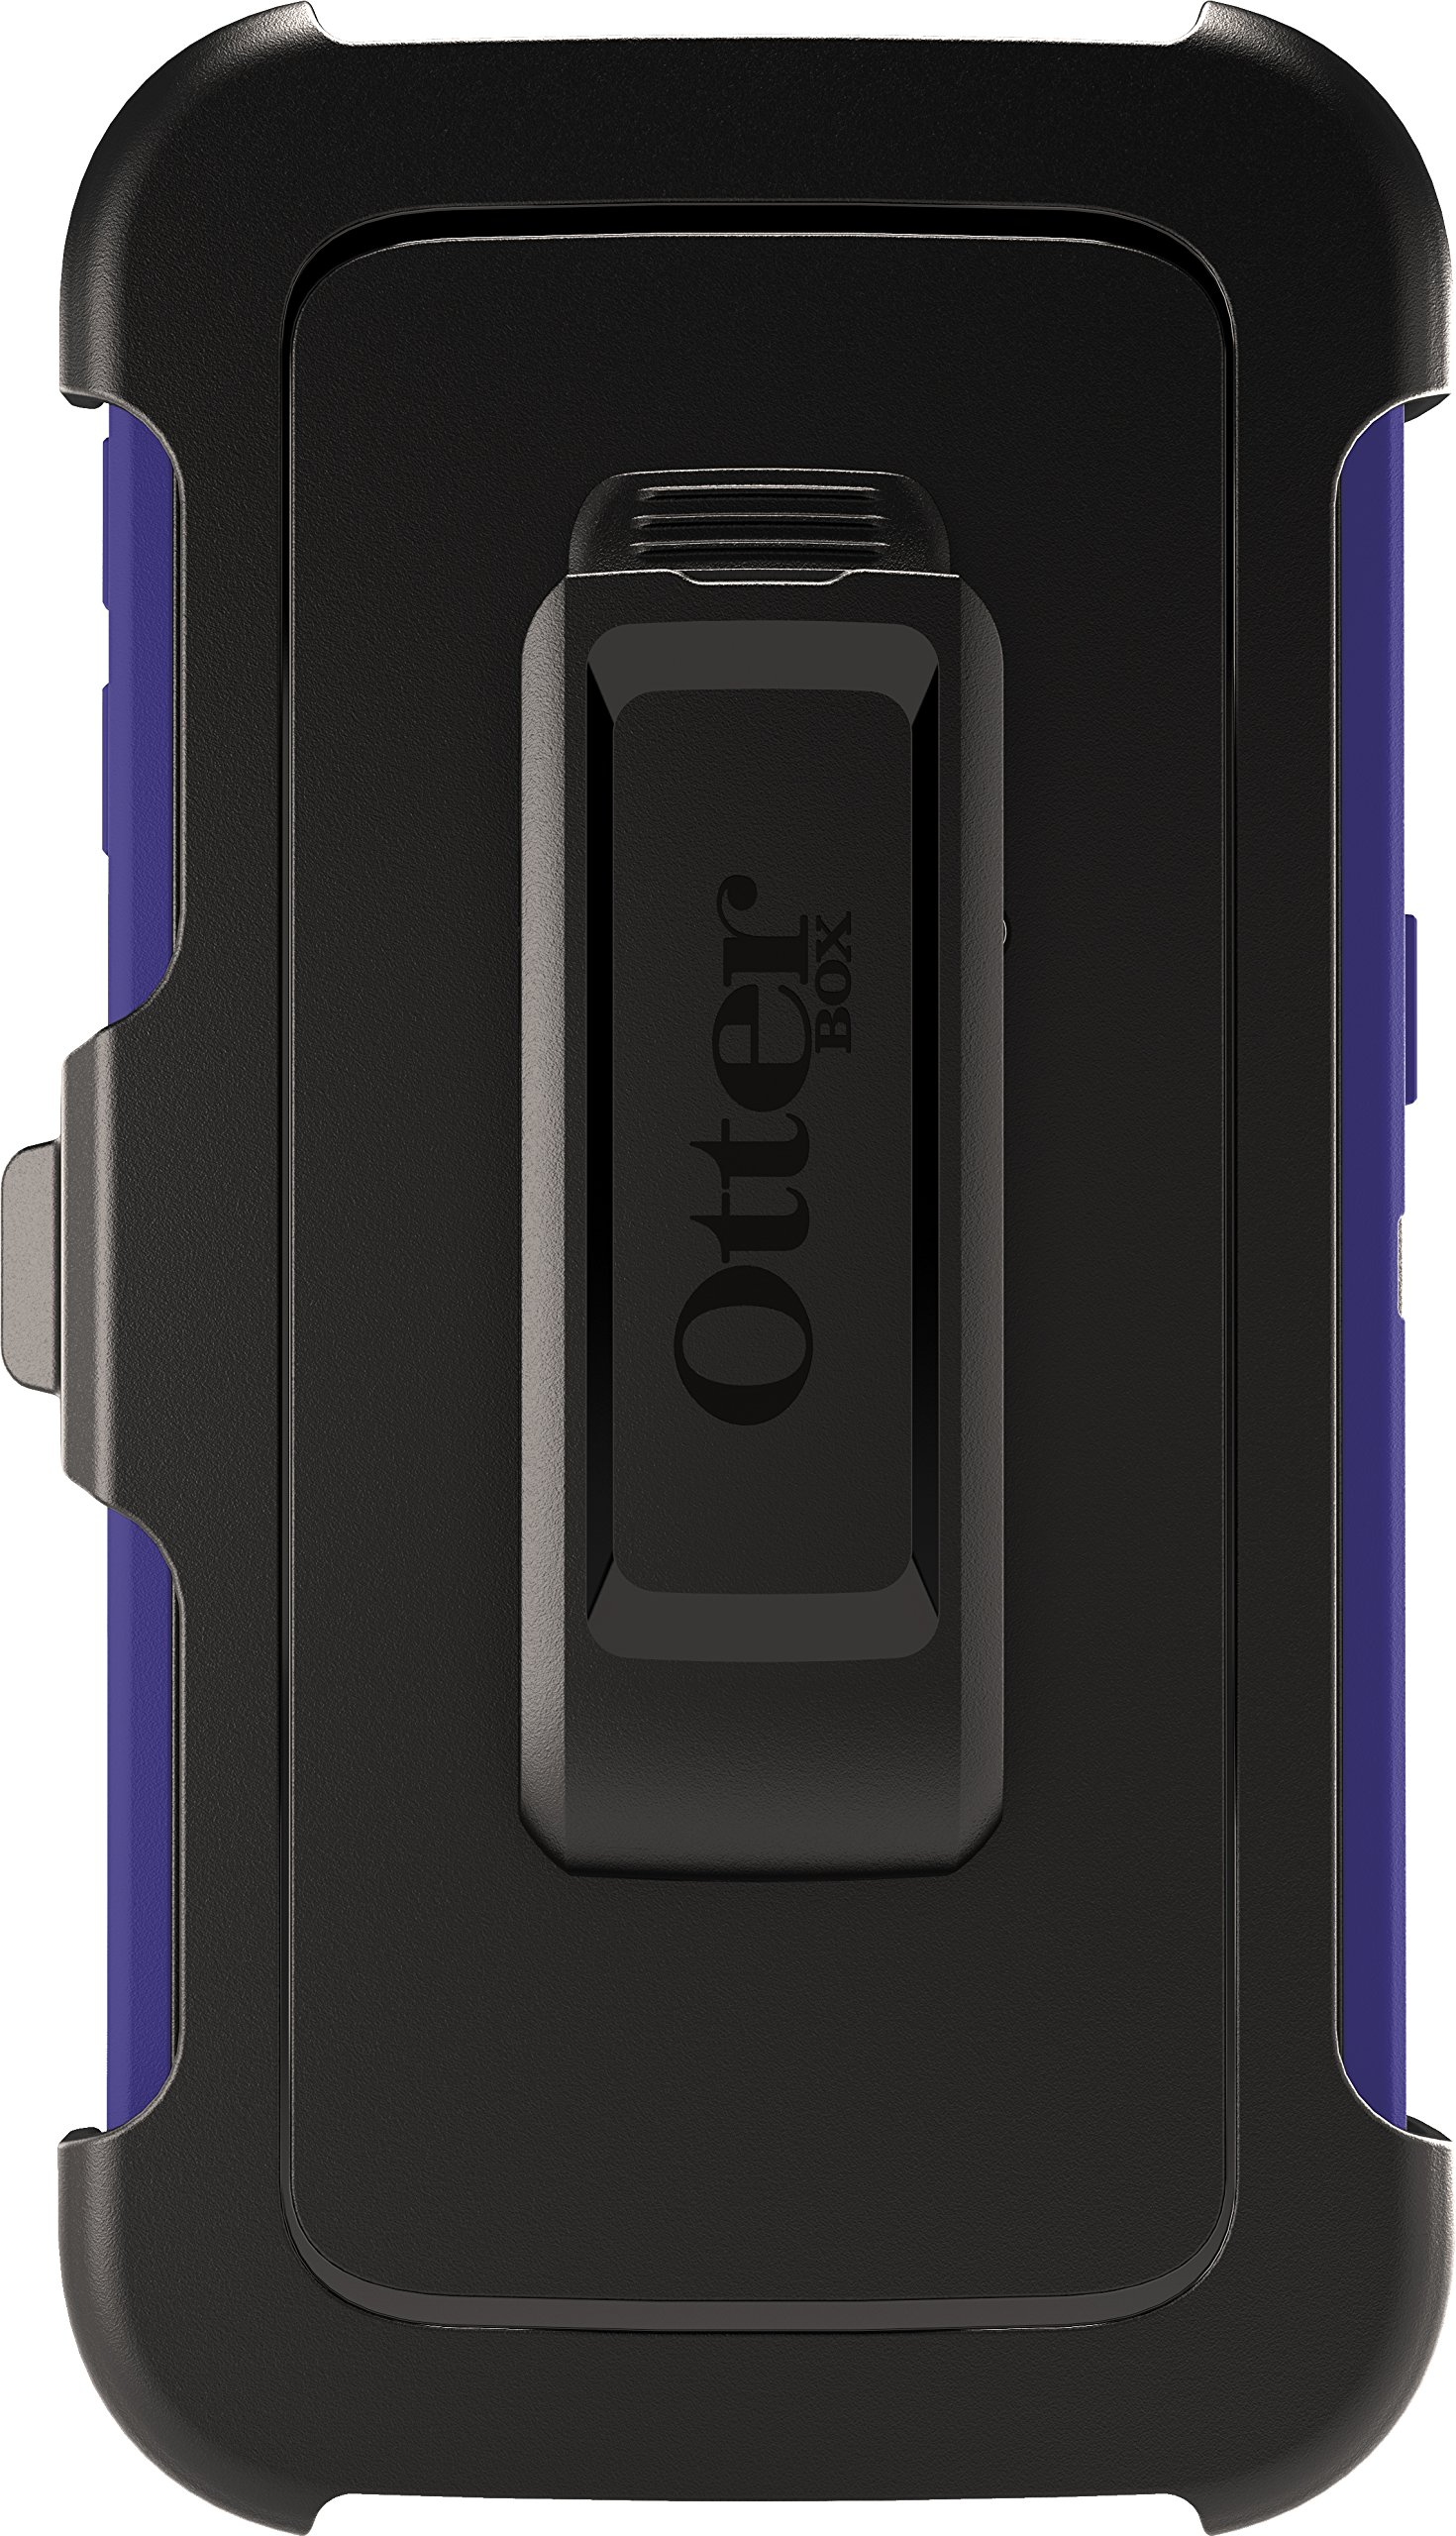 Otterbox Defender Series Case for Samsung Galaxy S6, Retail Packaging, Black/Liberty Purple